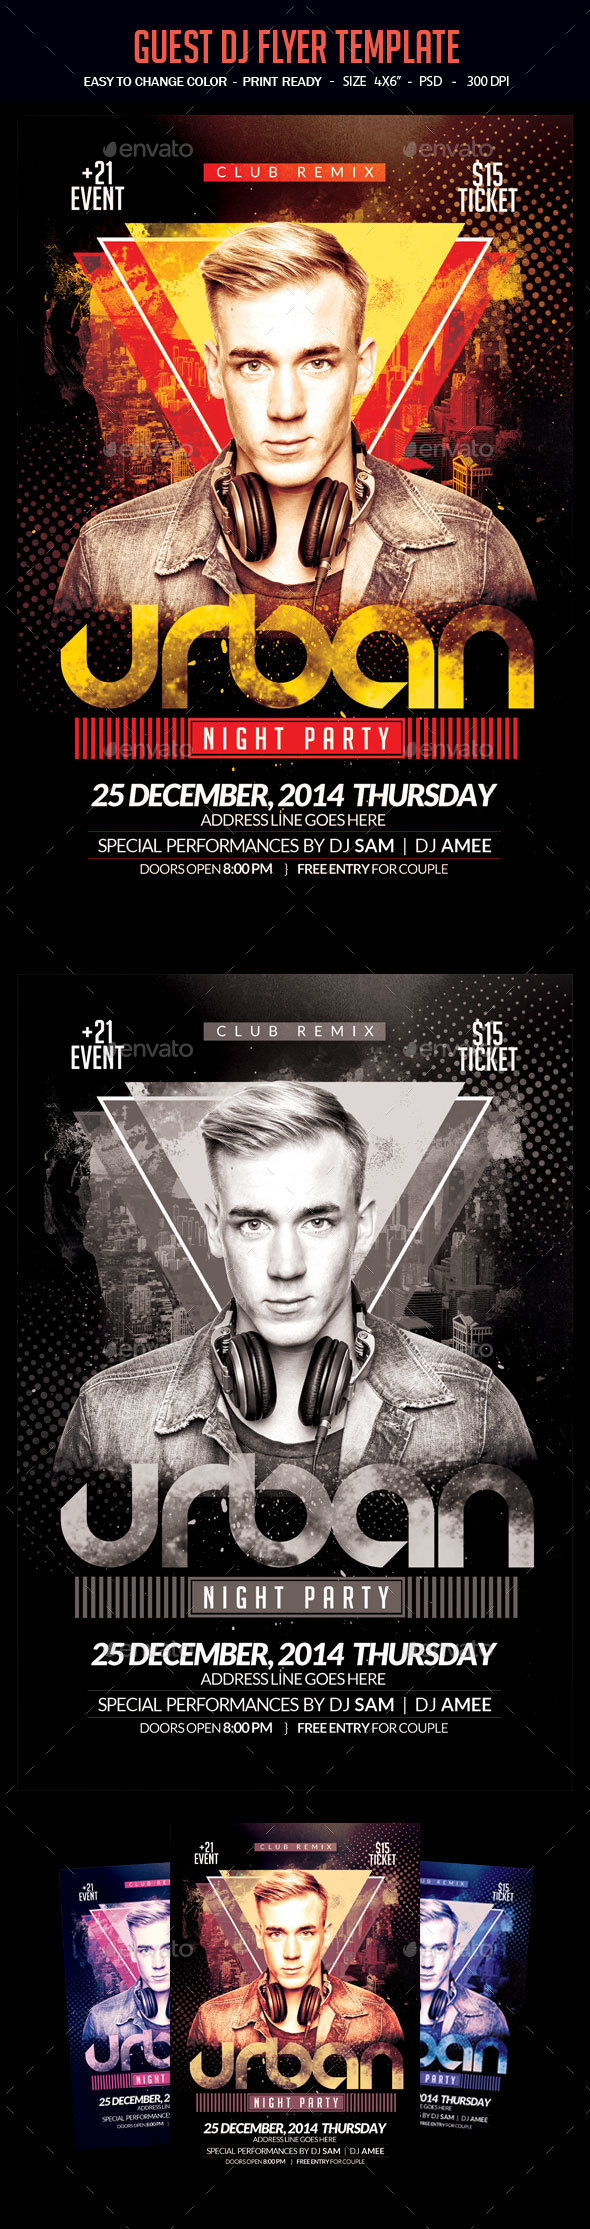 Urban Night Party Flyer Template - Clubs & Parties Events